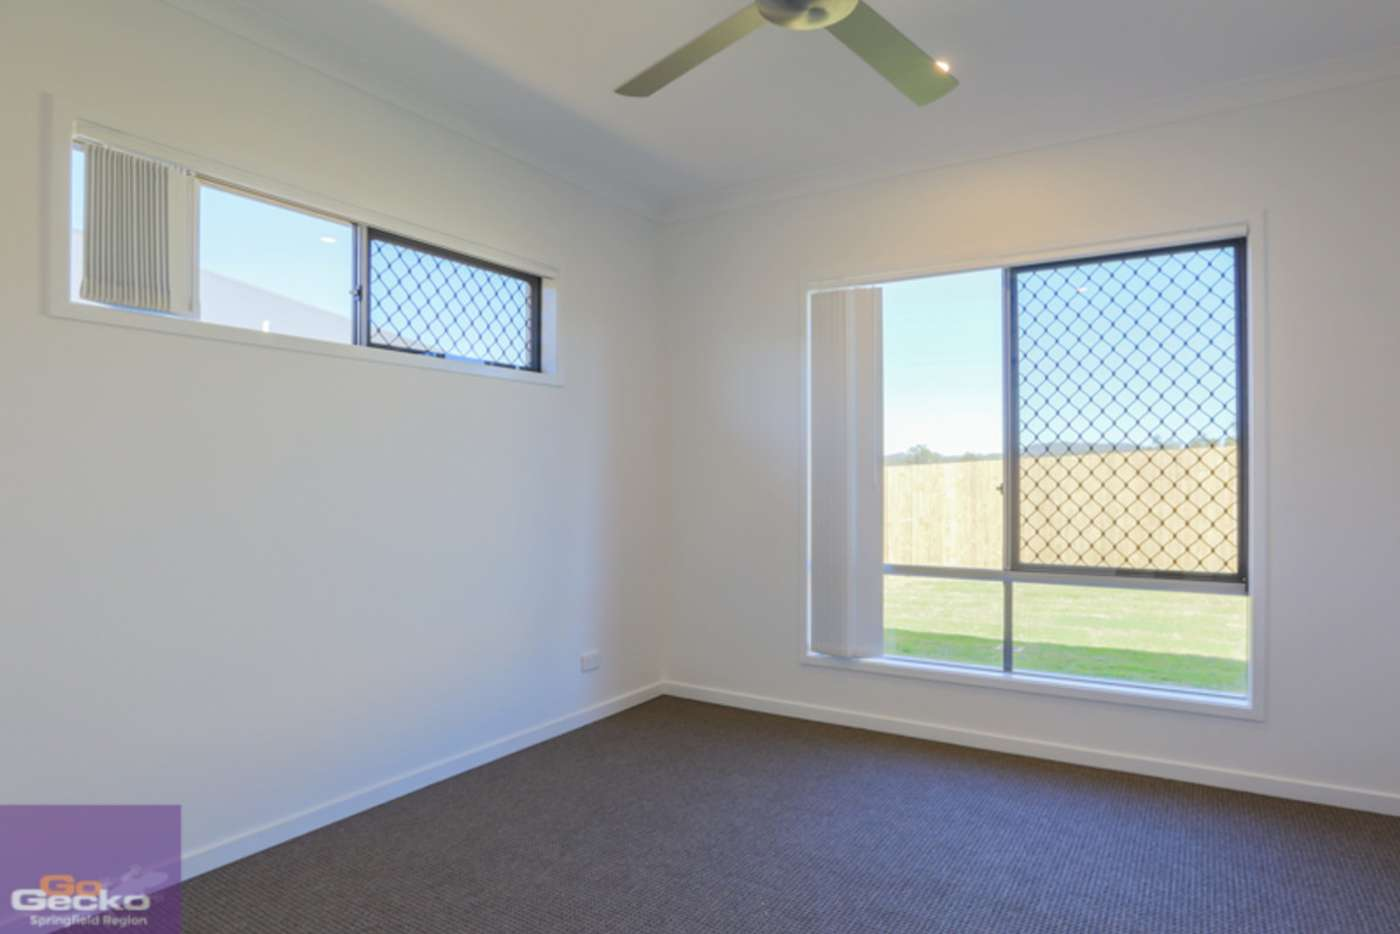 Fifth view of Homely house listing, 20 Butterfly Way, Ripley QLD 4306